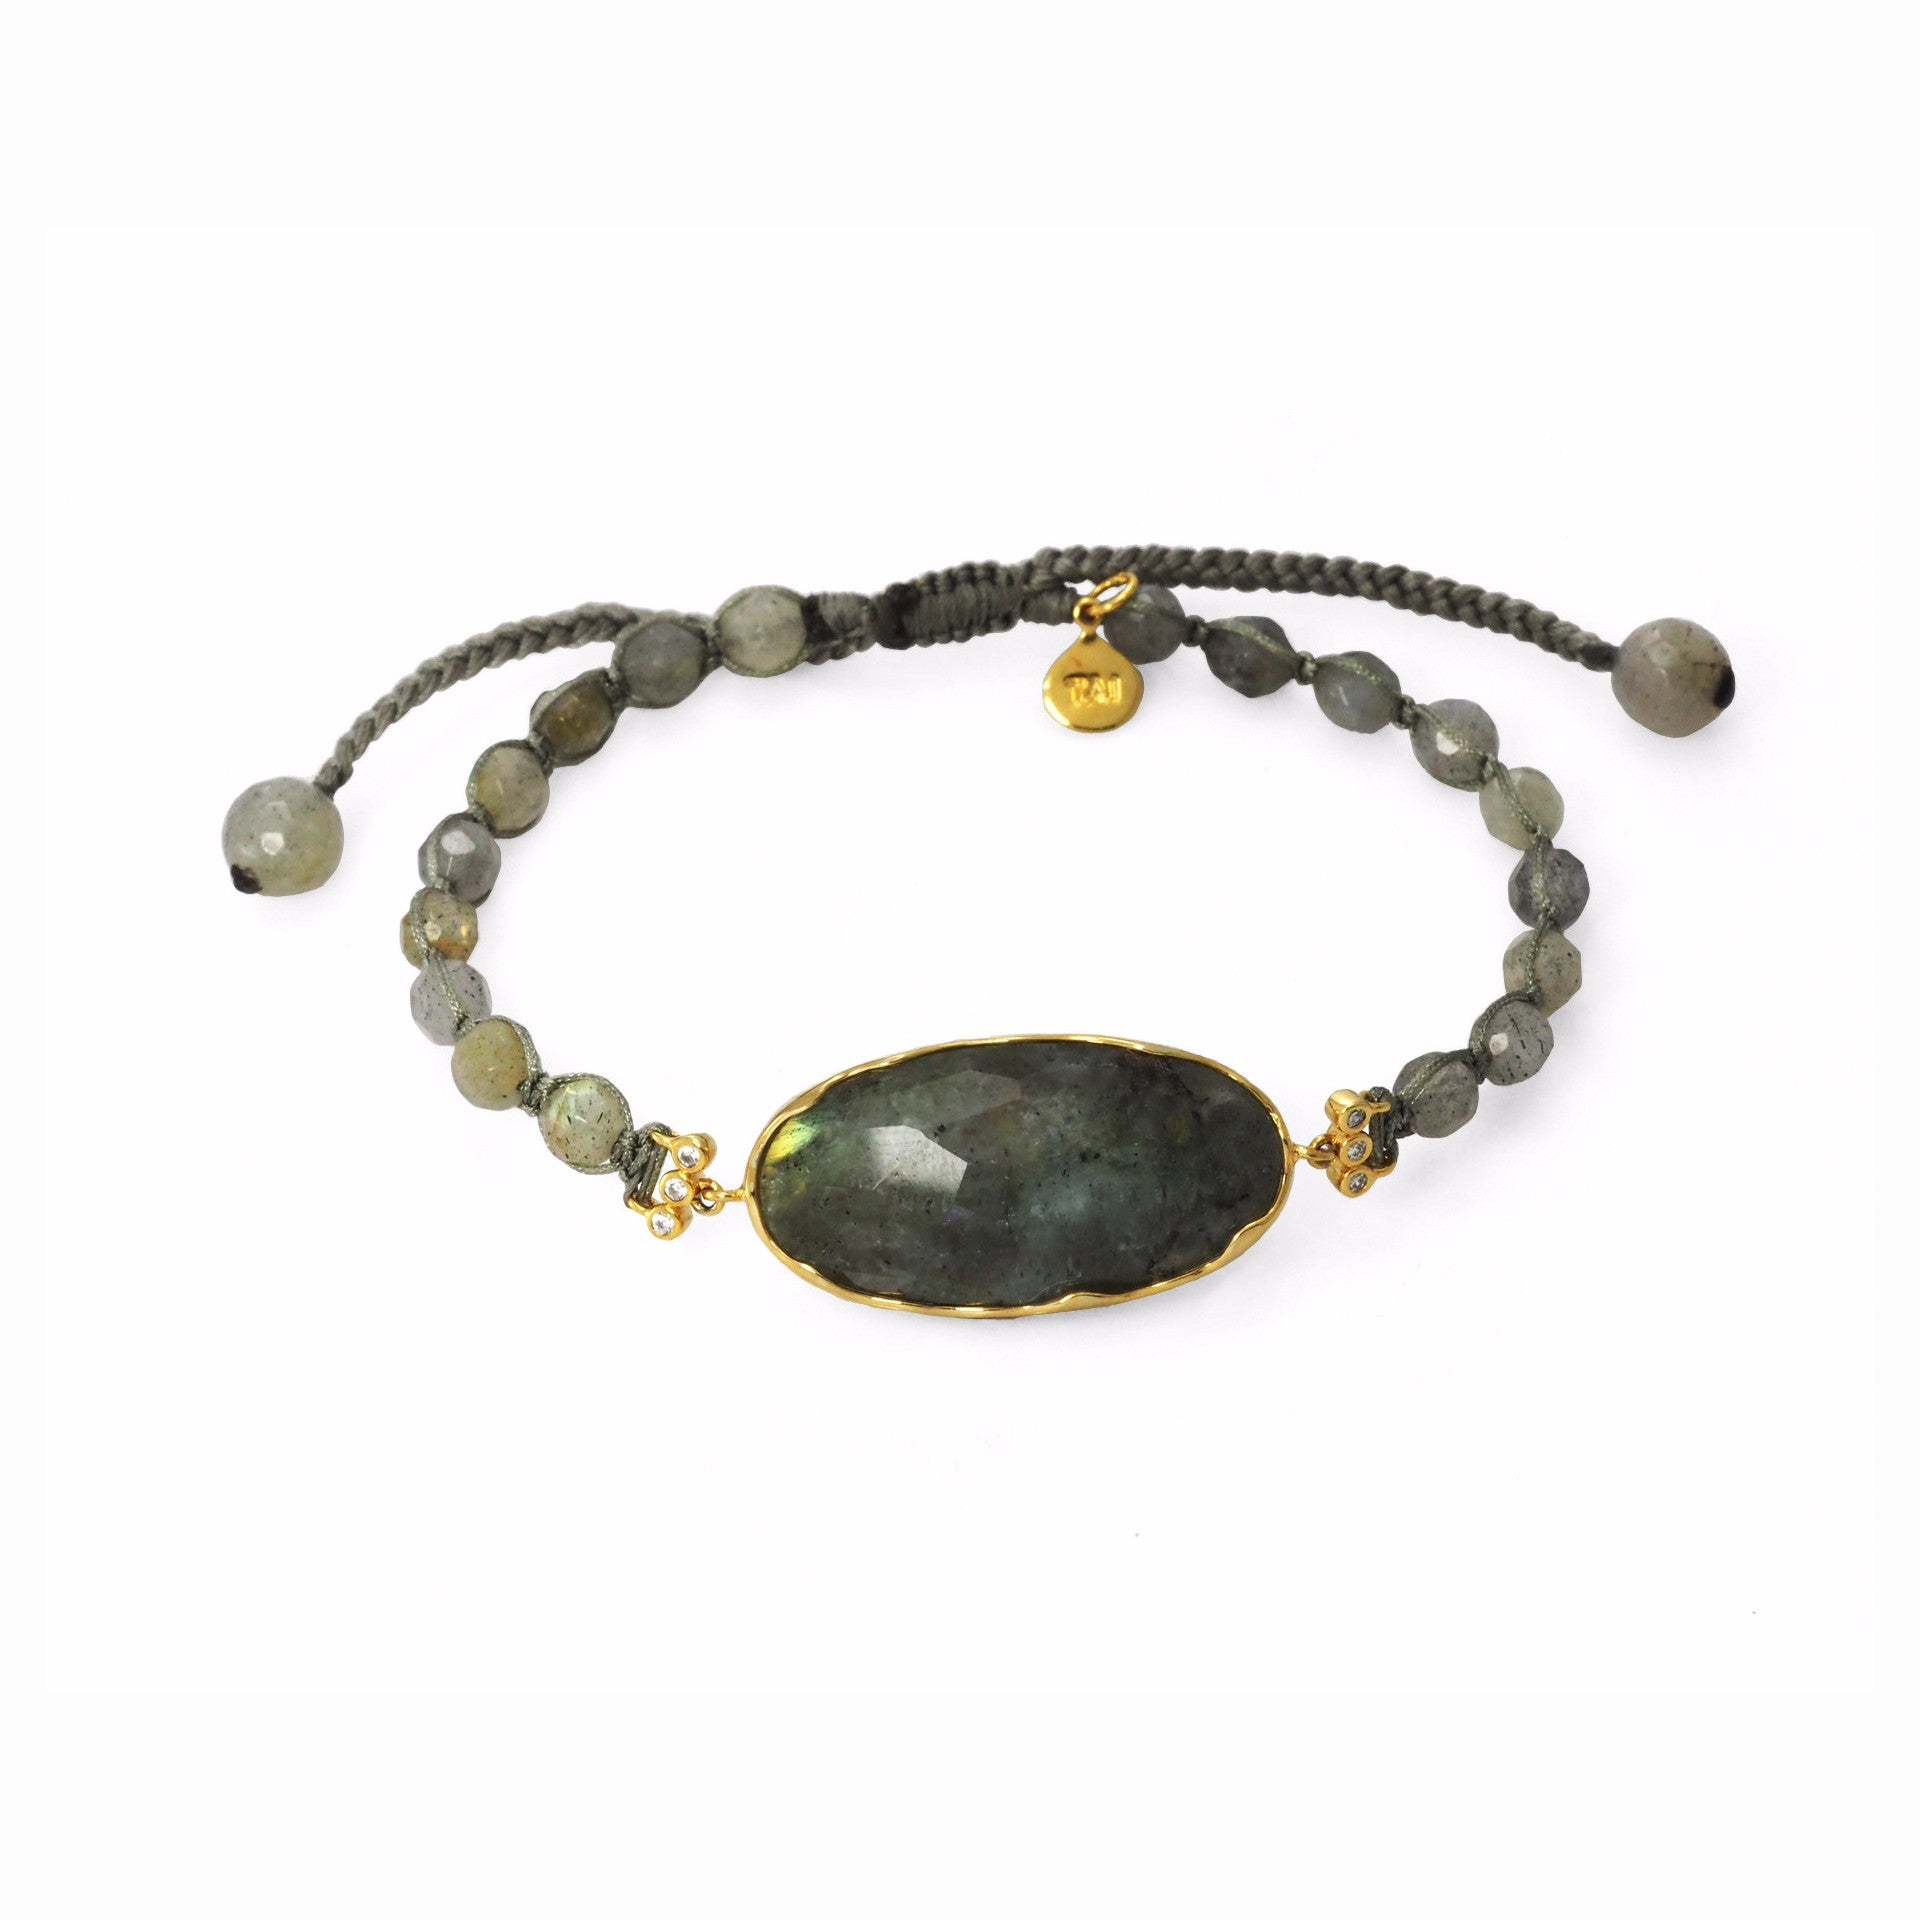 BEADED BRACELET WITH STONE CENTER